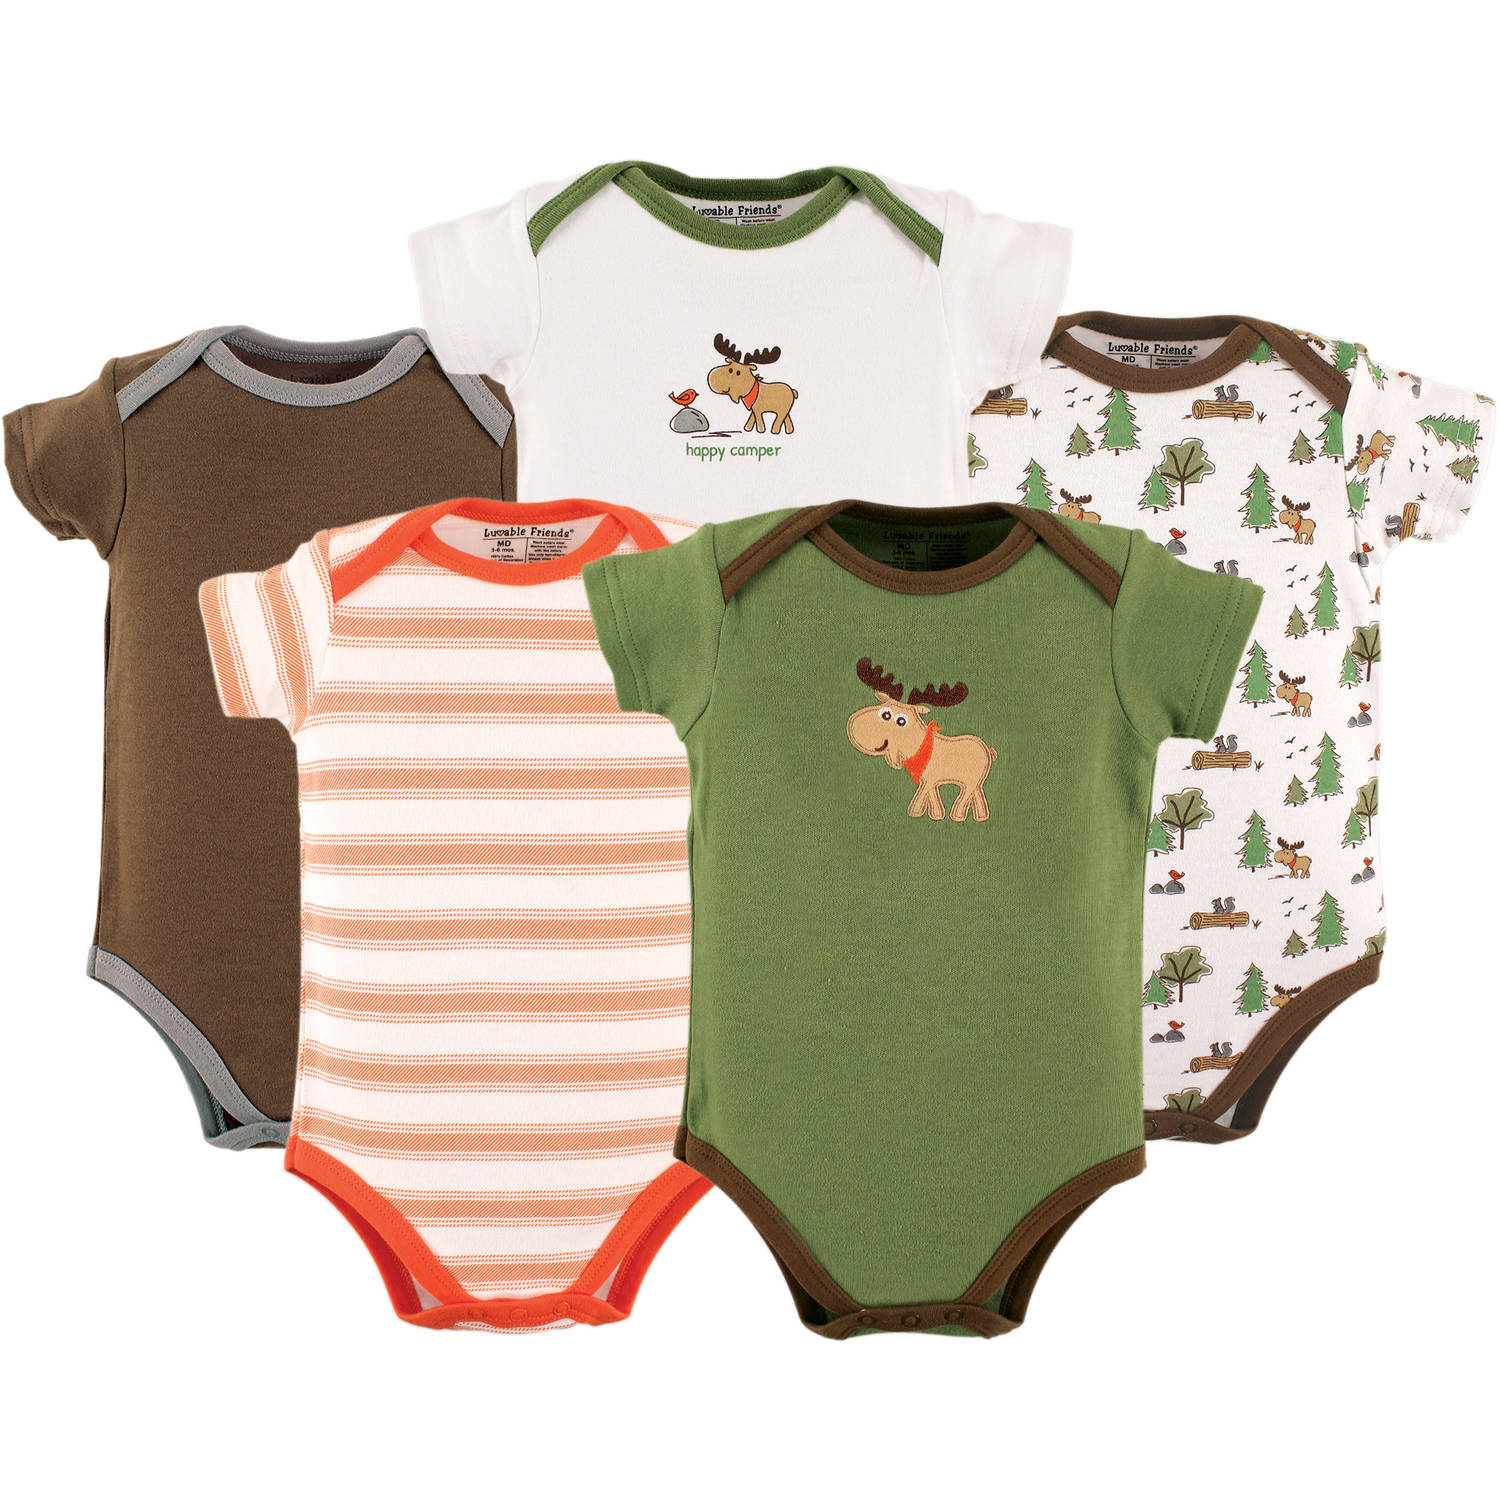 Luvable Friends Newborn Baby Boys Bodysuit 5-Pack, Moose